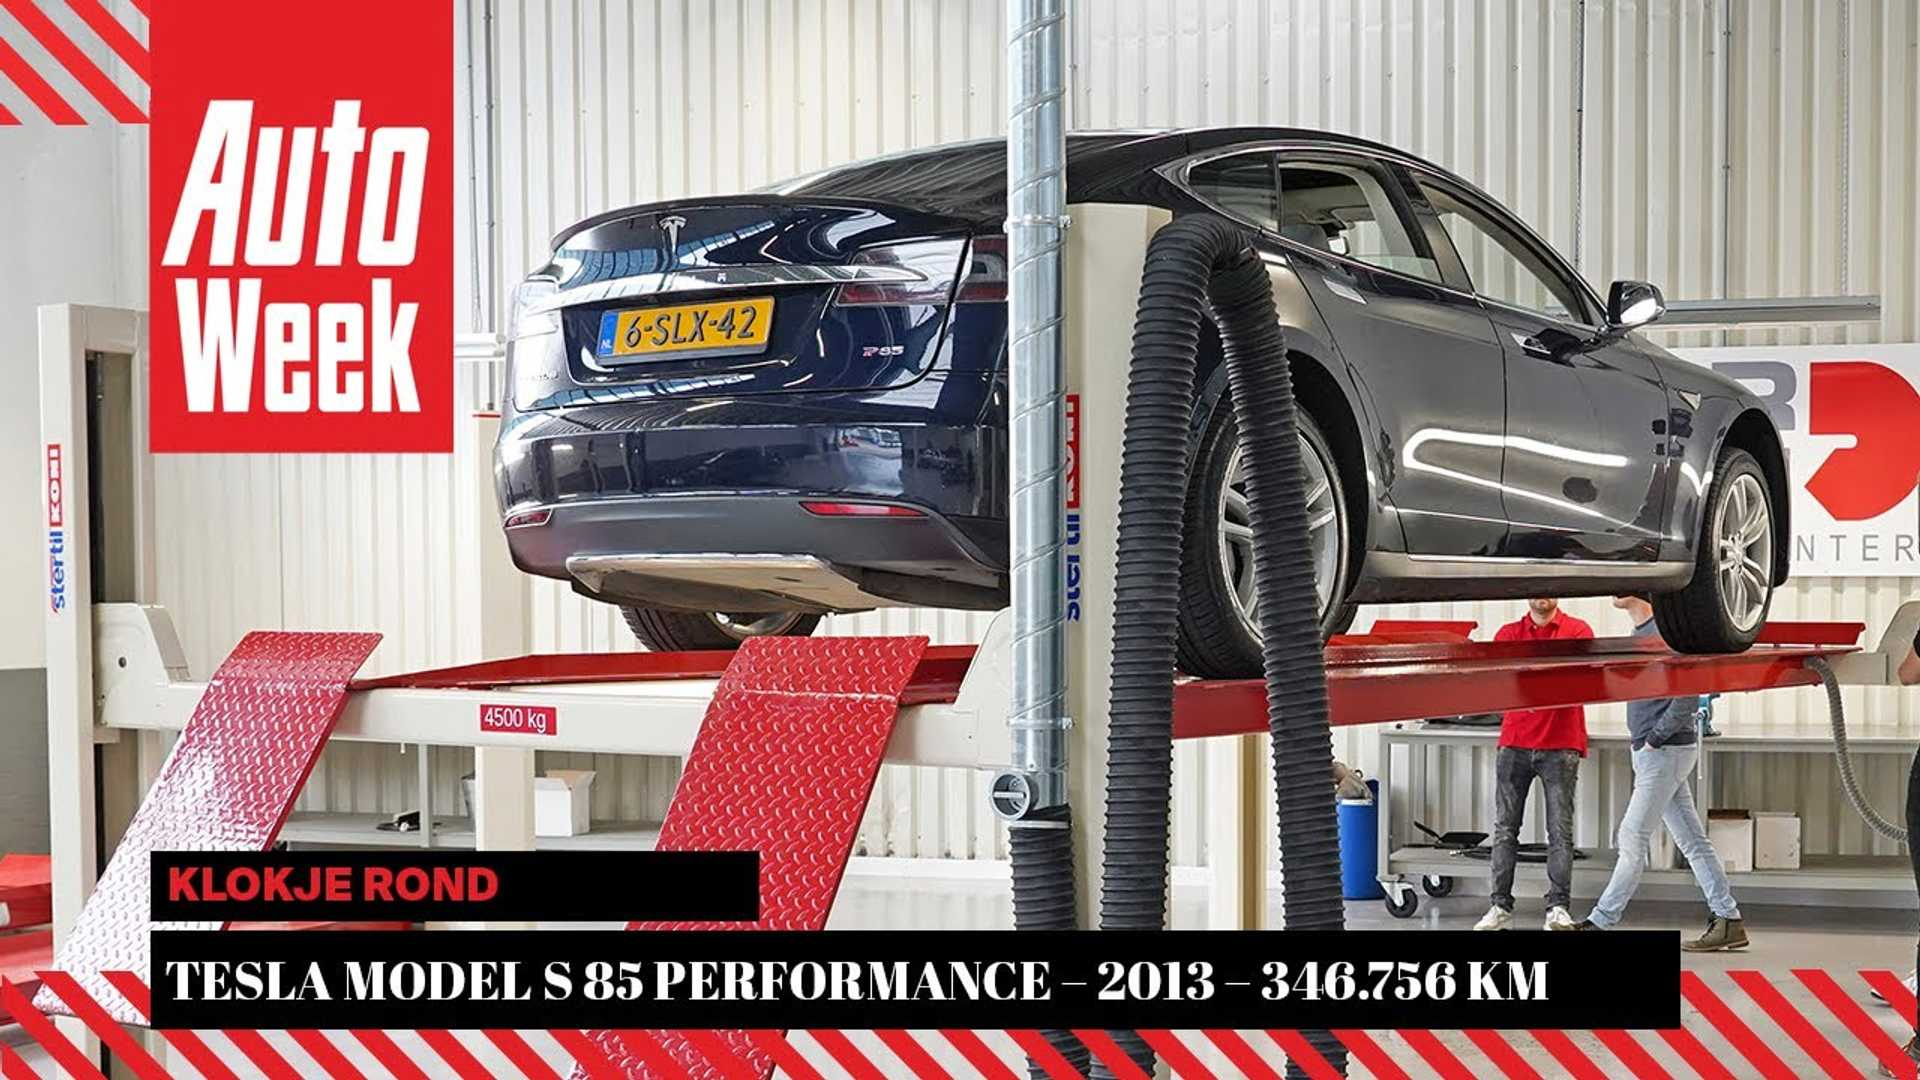 How Does A 2013 Tesla Model S Fare After 350,000 Km?